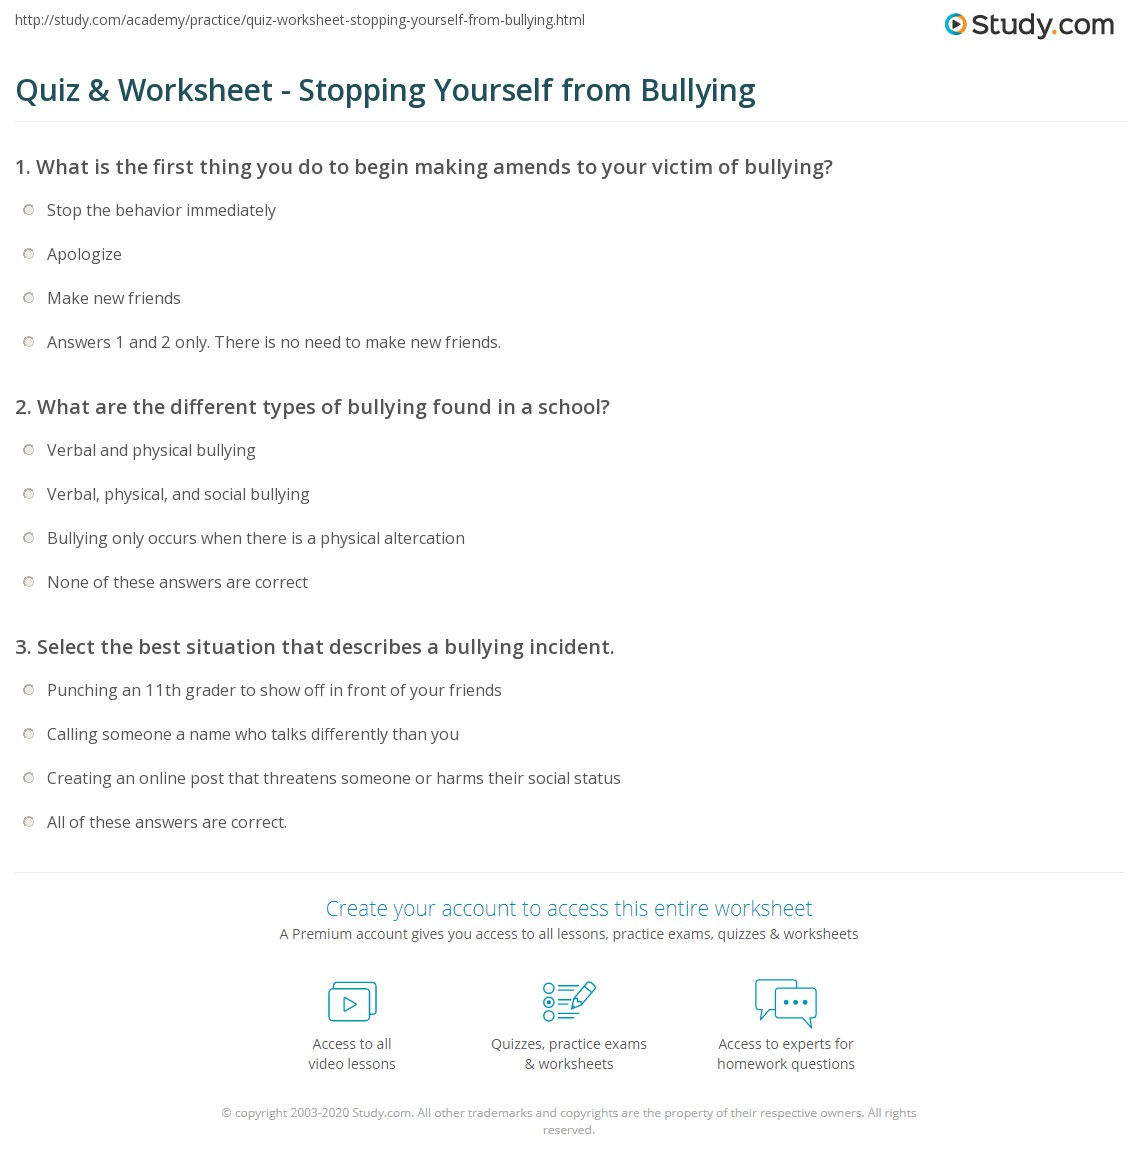 Quiz & Worksheet Stopping Yourself from Bullying